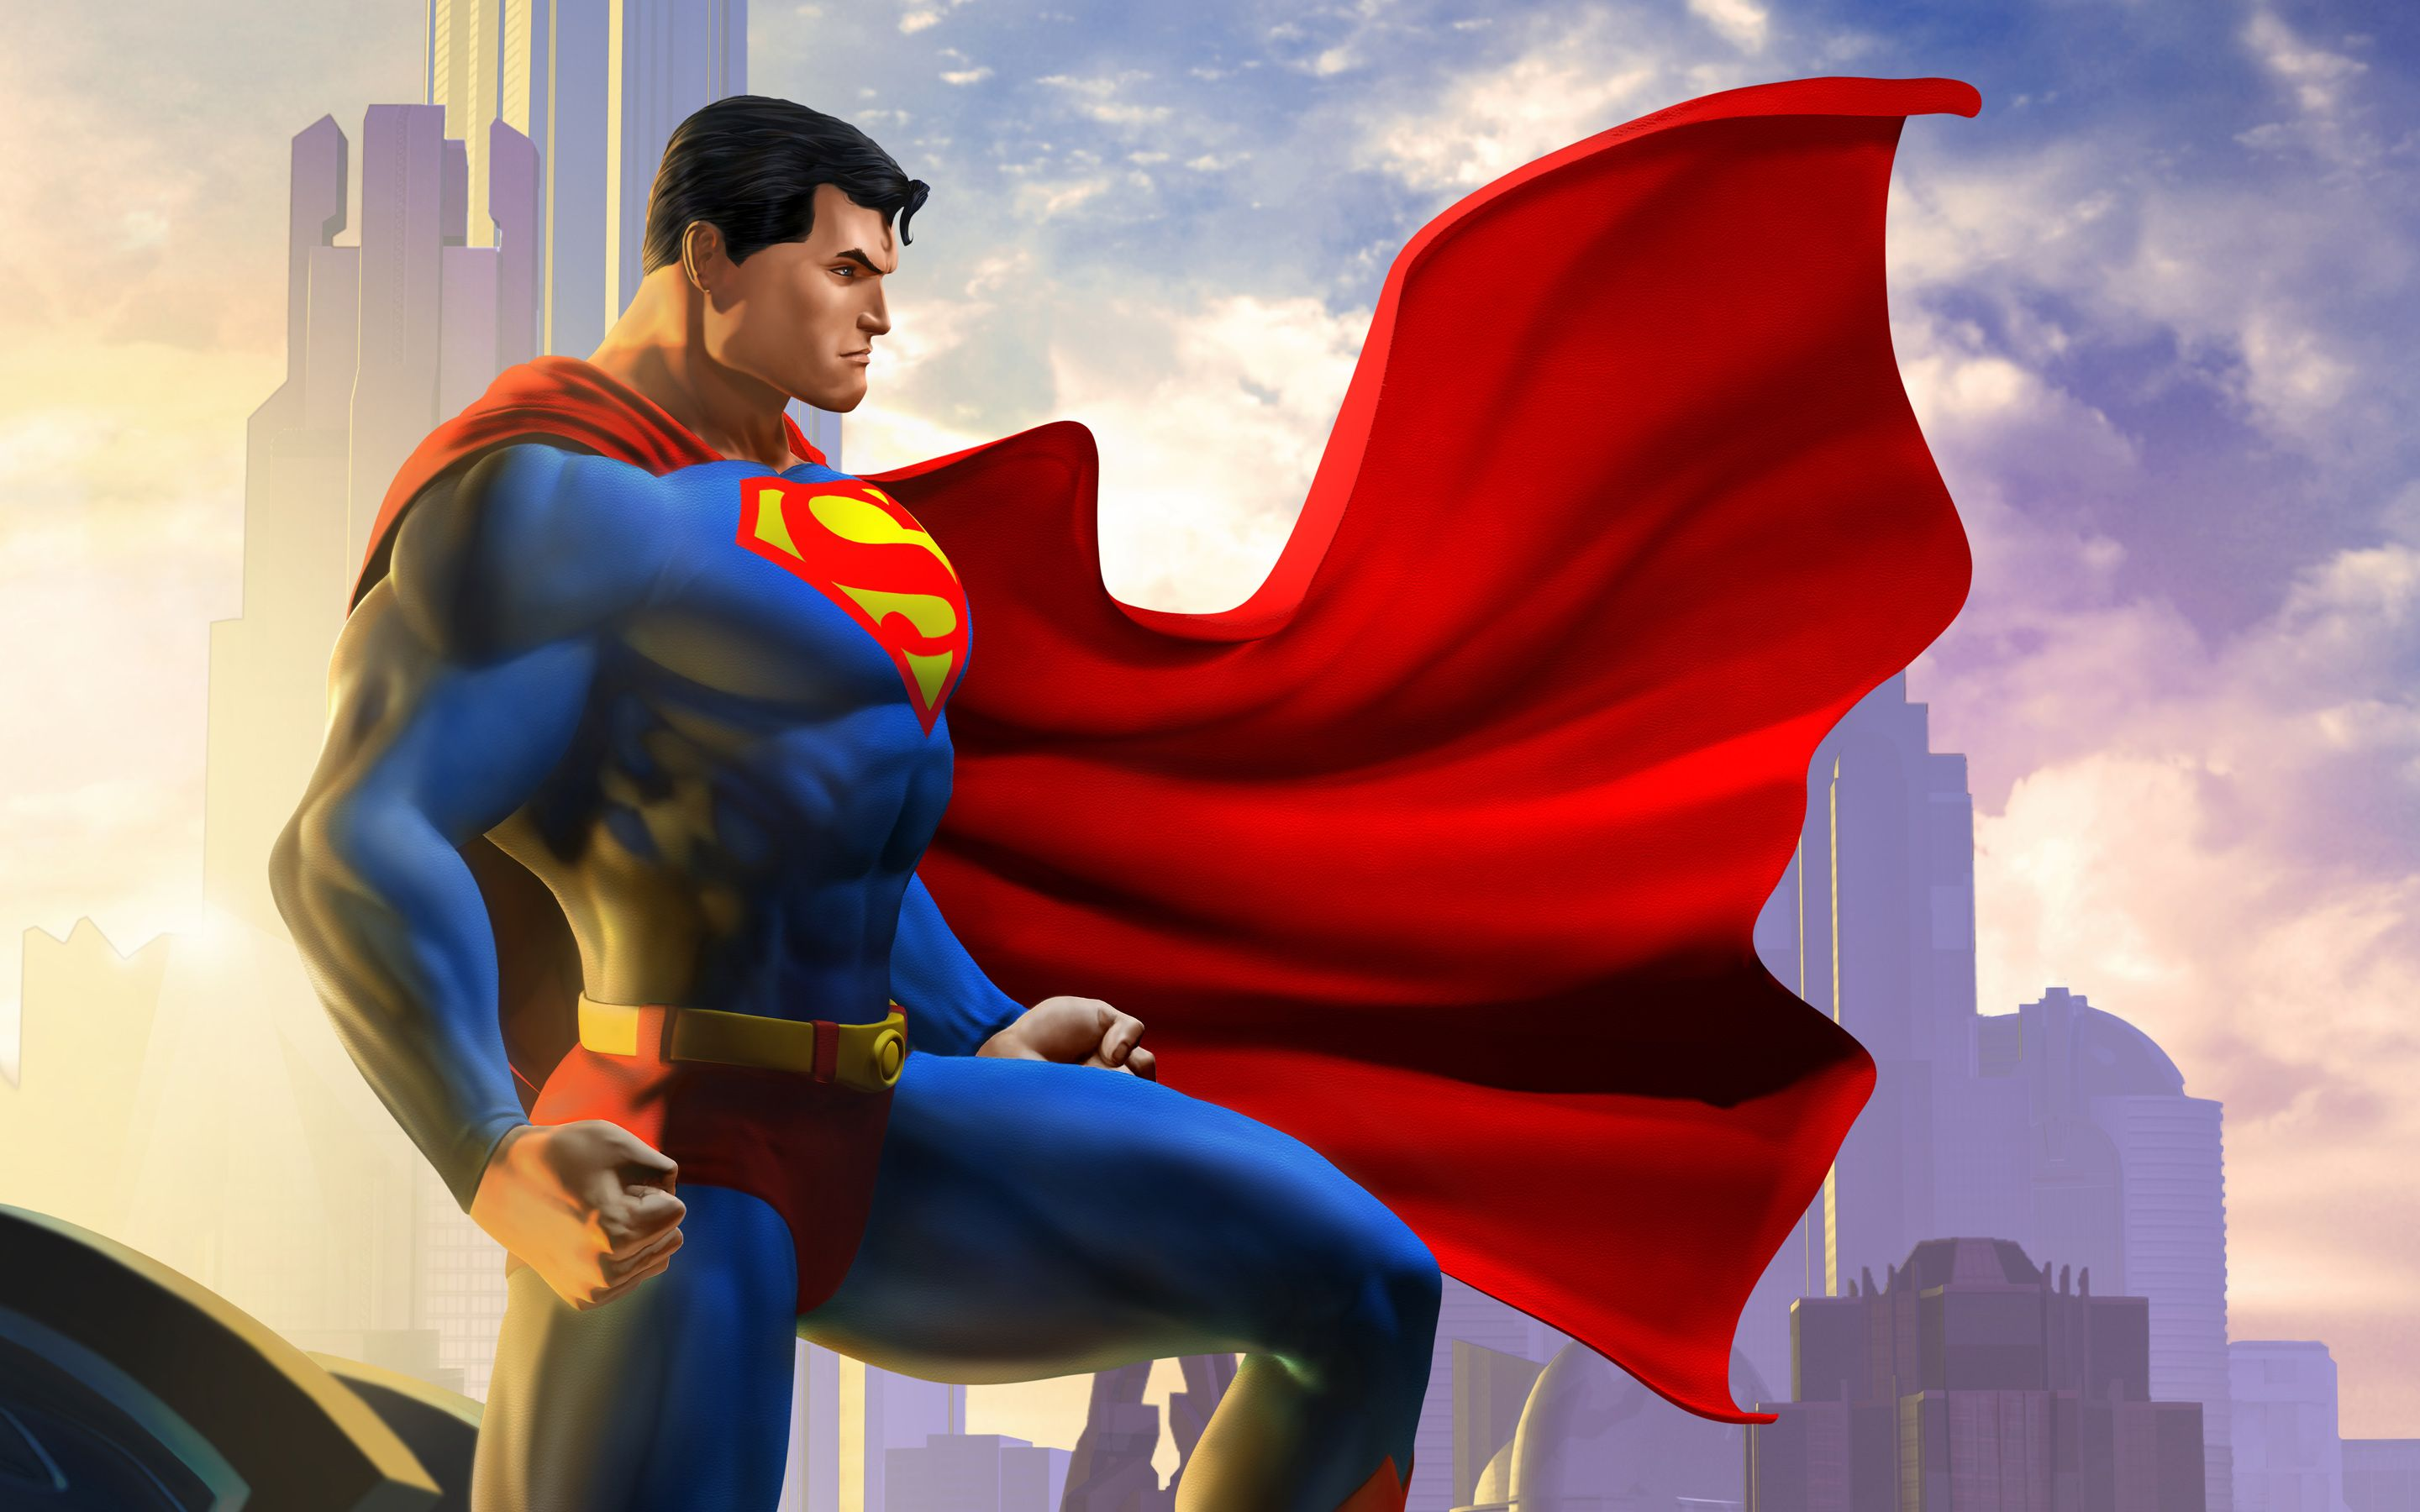 superman wallpaper hd, superman wallpaper hd for android